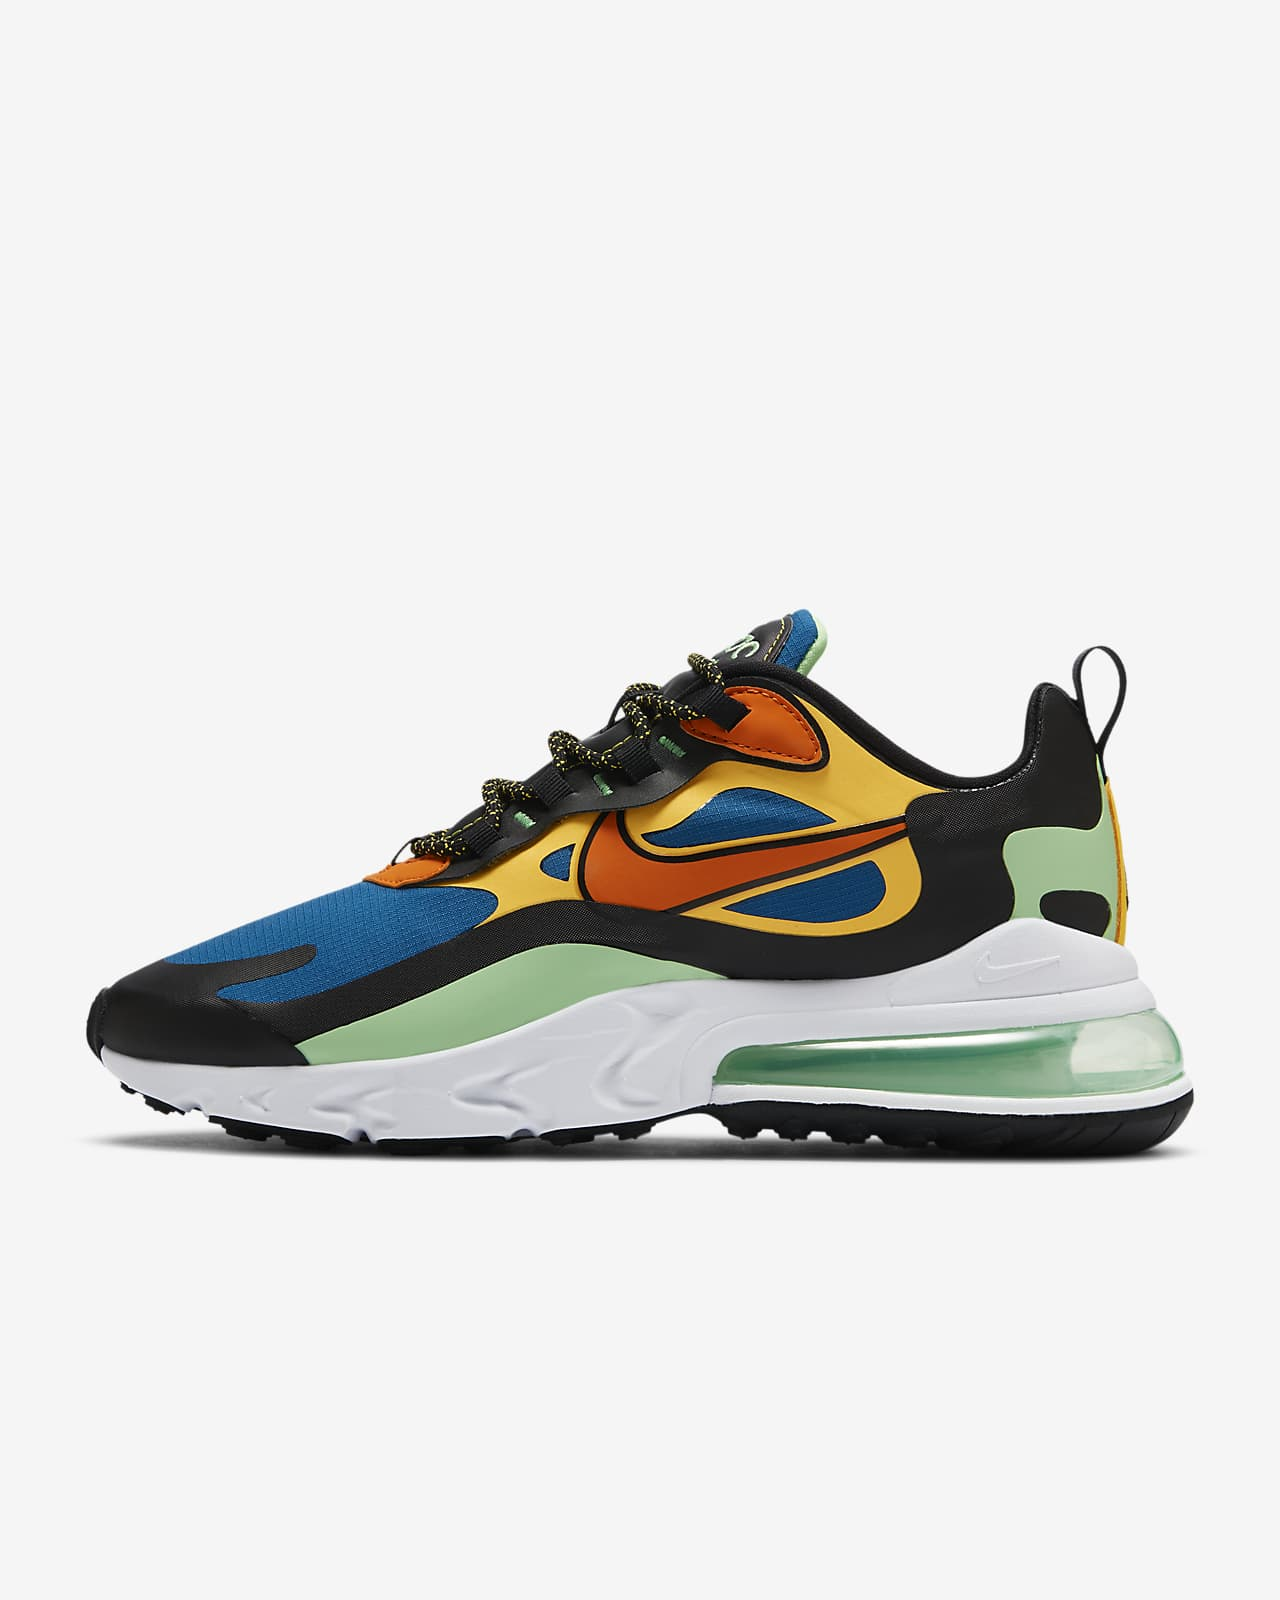 Perder eco Absorber  Nike Air Max 270 React Men's Shoe. Nike PH